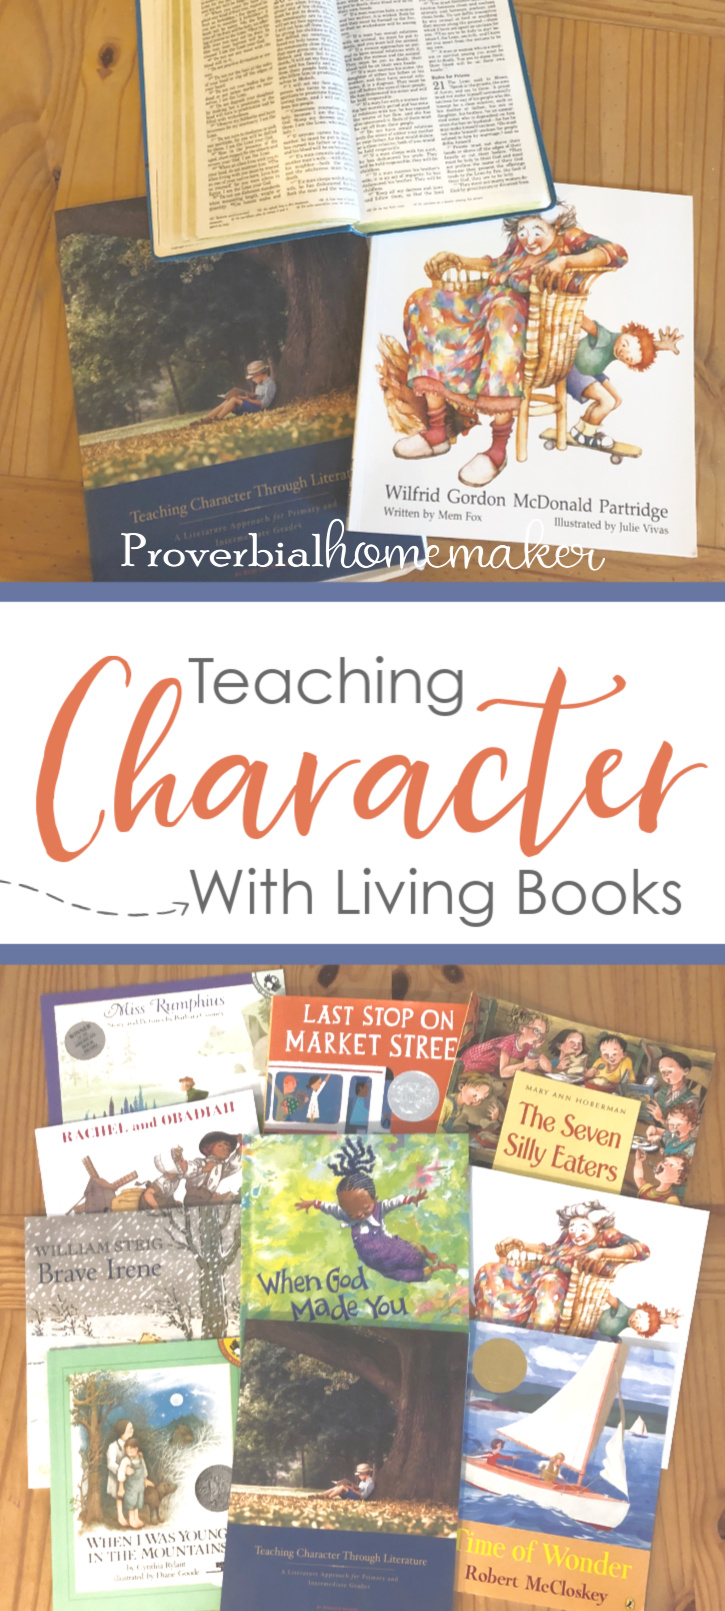 Teach your kids about godly character traits using this fantastic curriculum from Beautiful Feet Books! You'll be teaching character with living books!